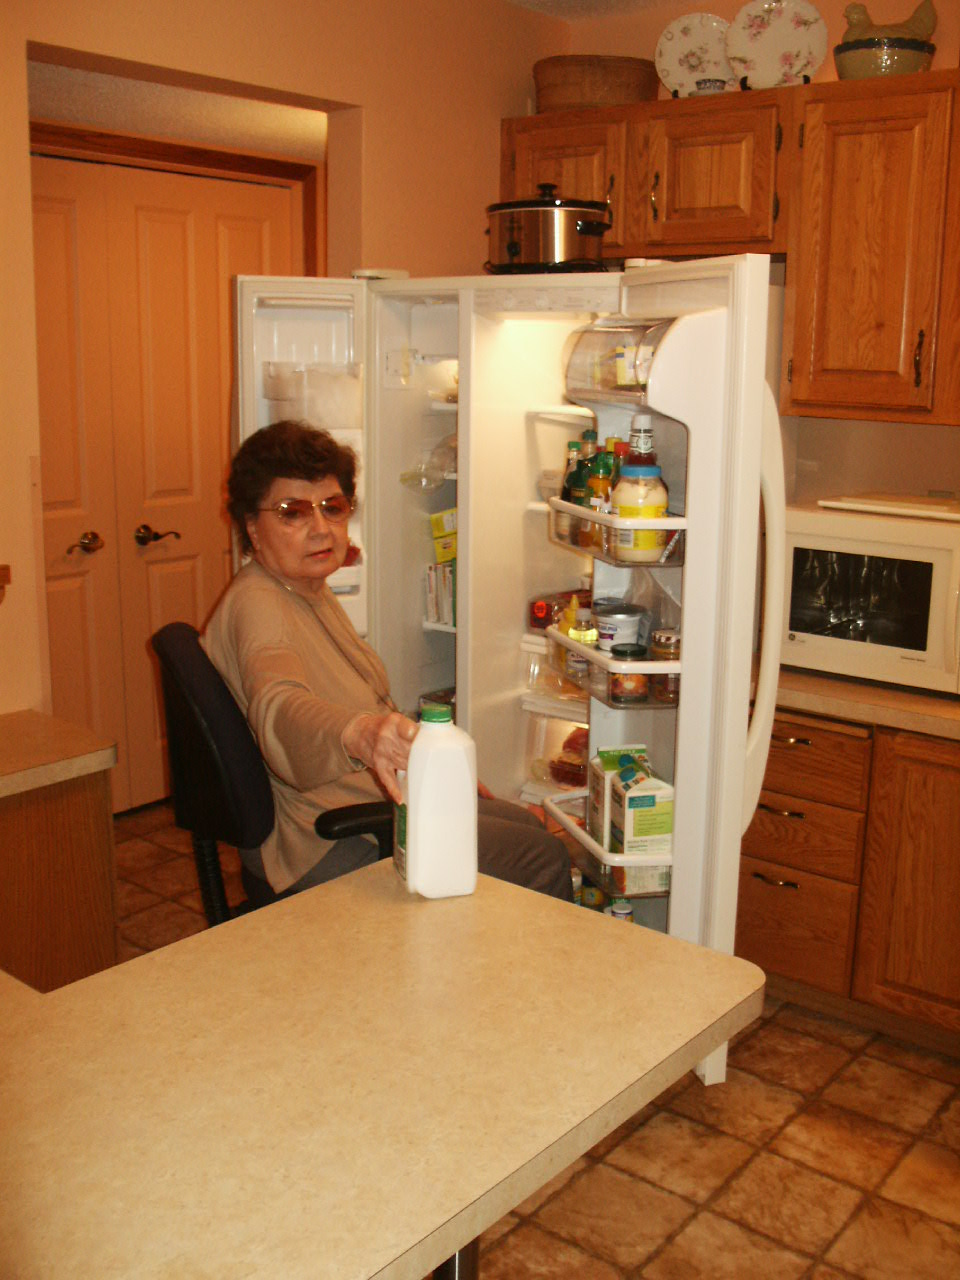 Jeanne showing how easily she can remove multiple items from her fridge.